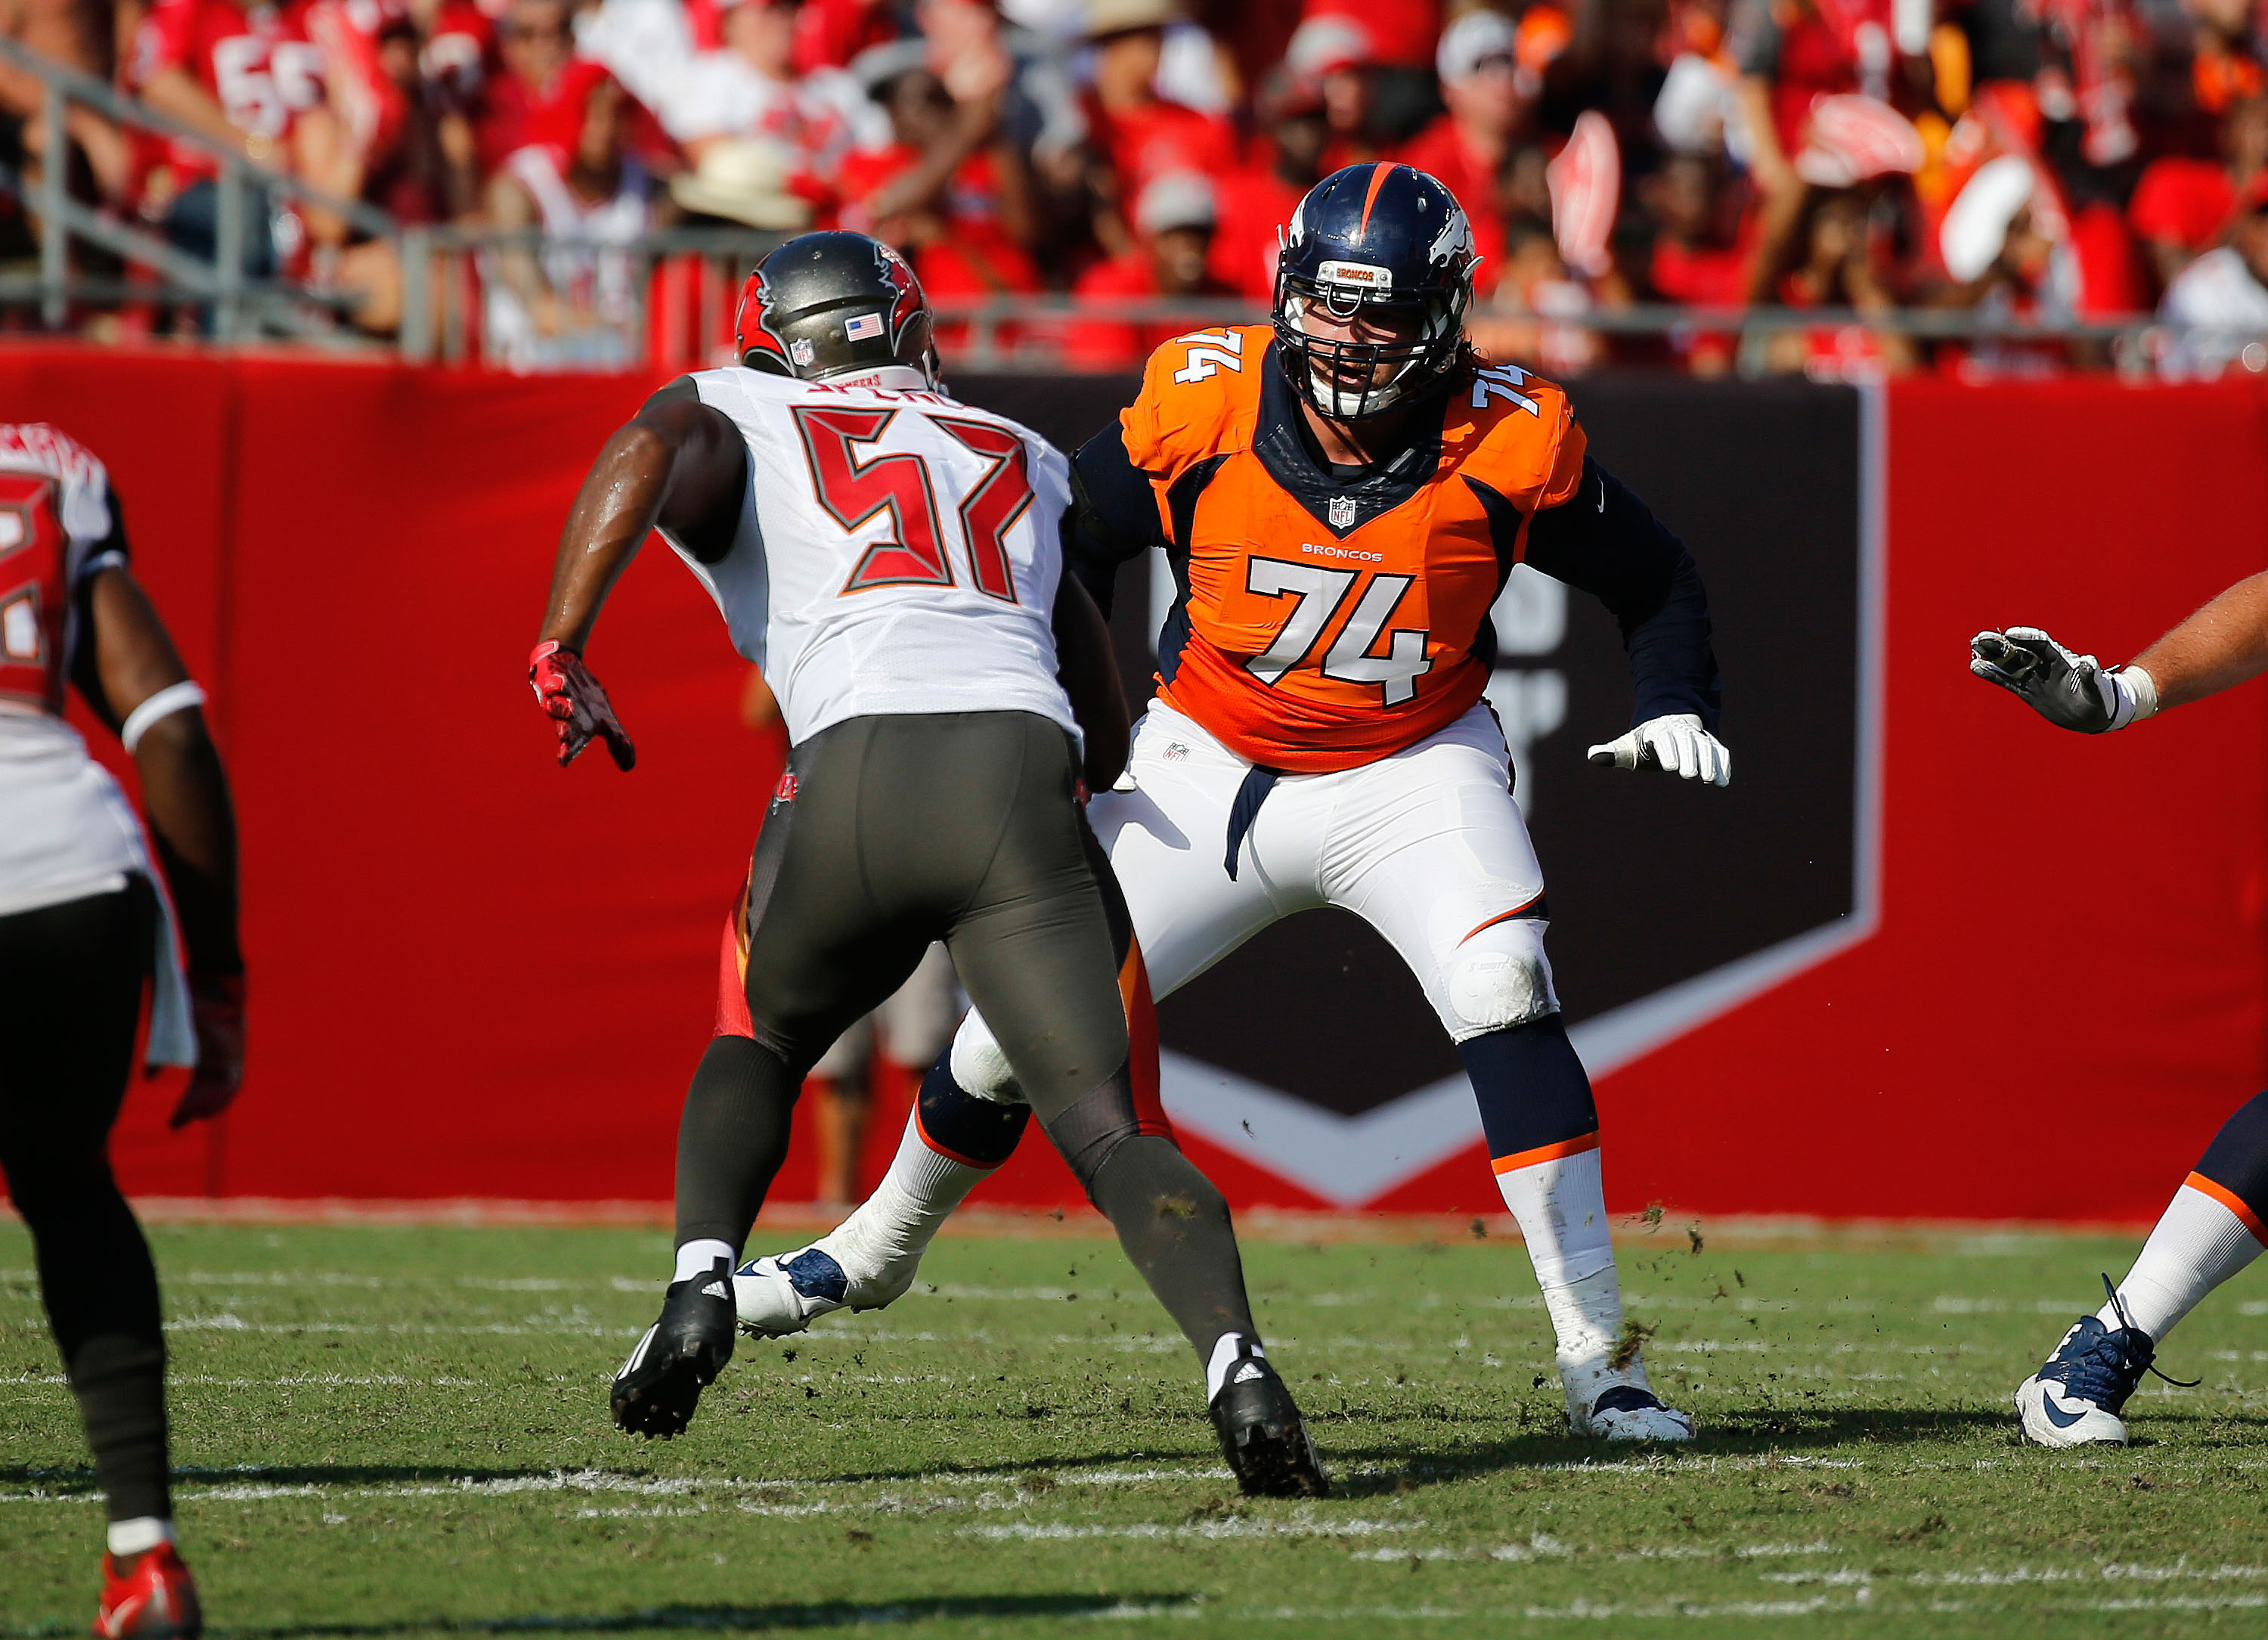 9594045-nfl-denver-broncos-at-tampa-bay-buccaneers